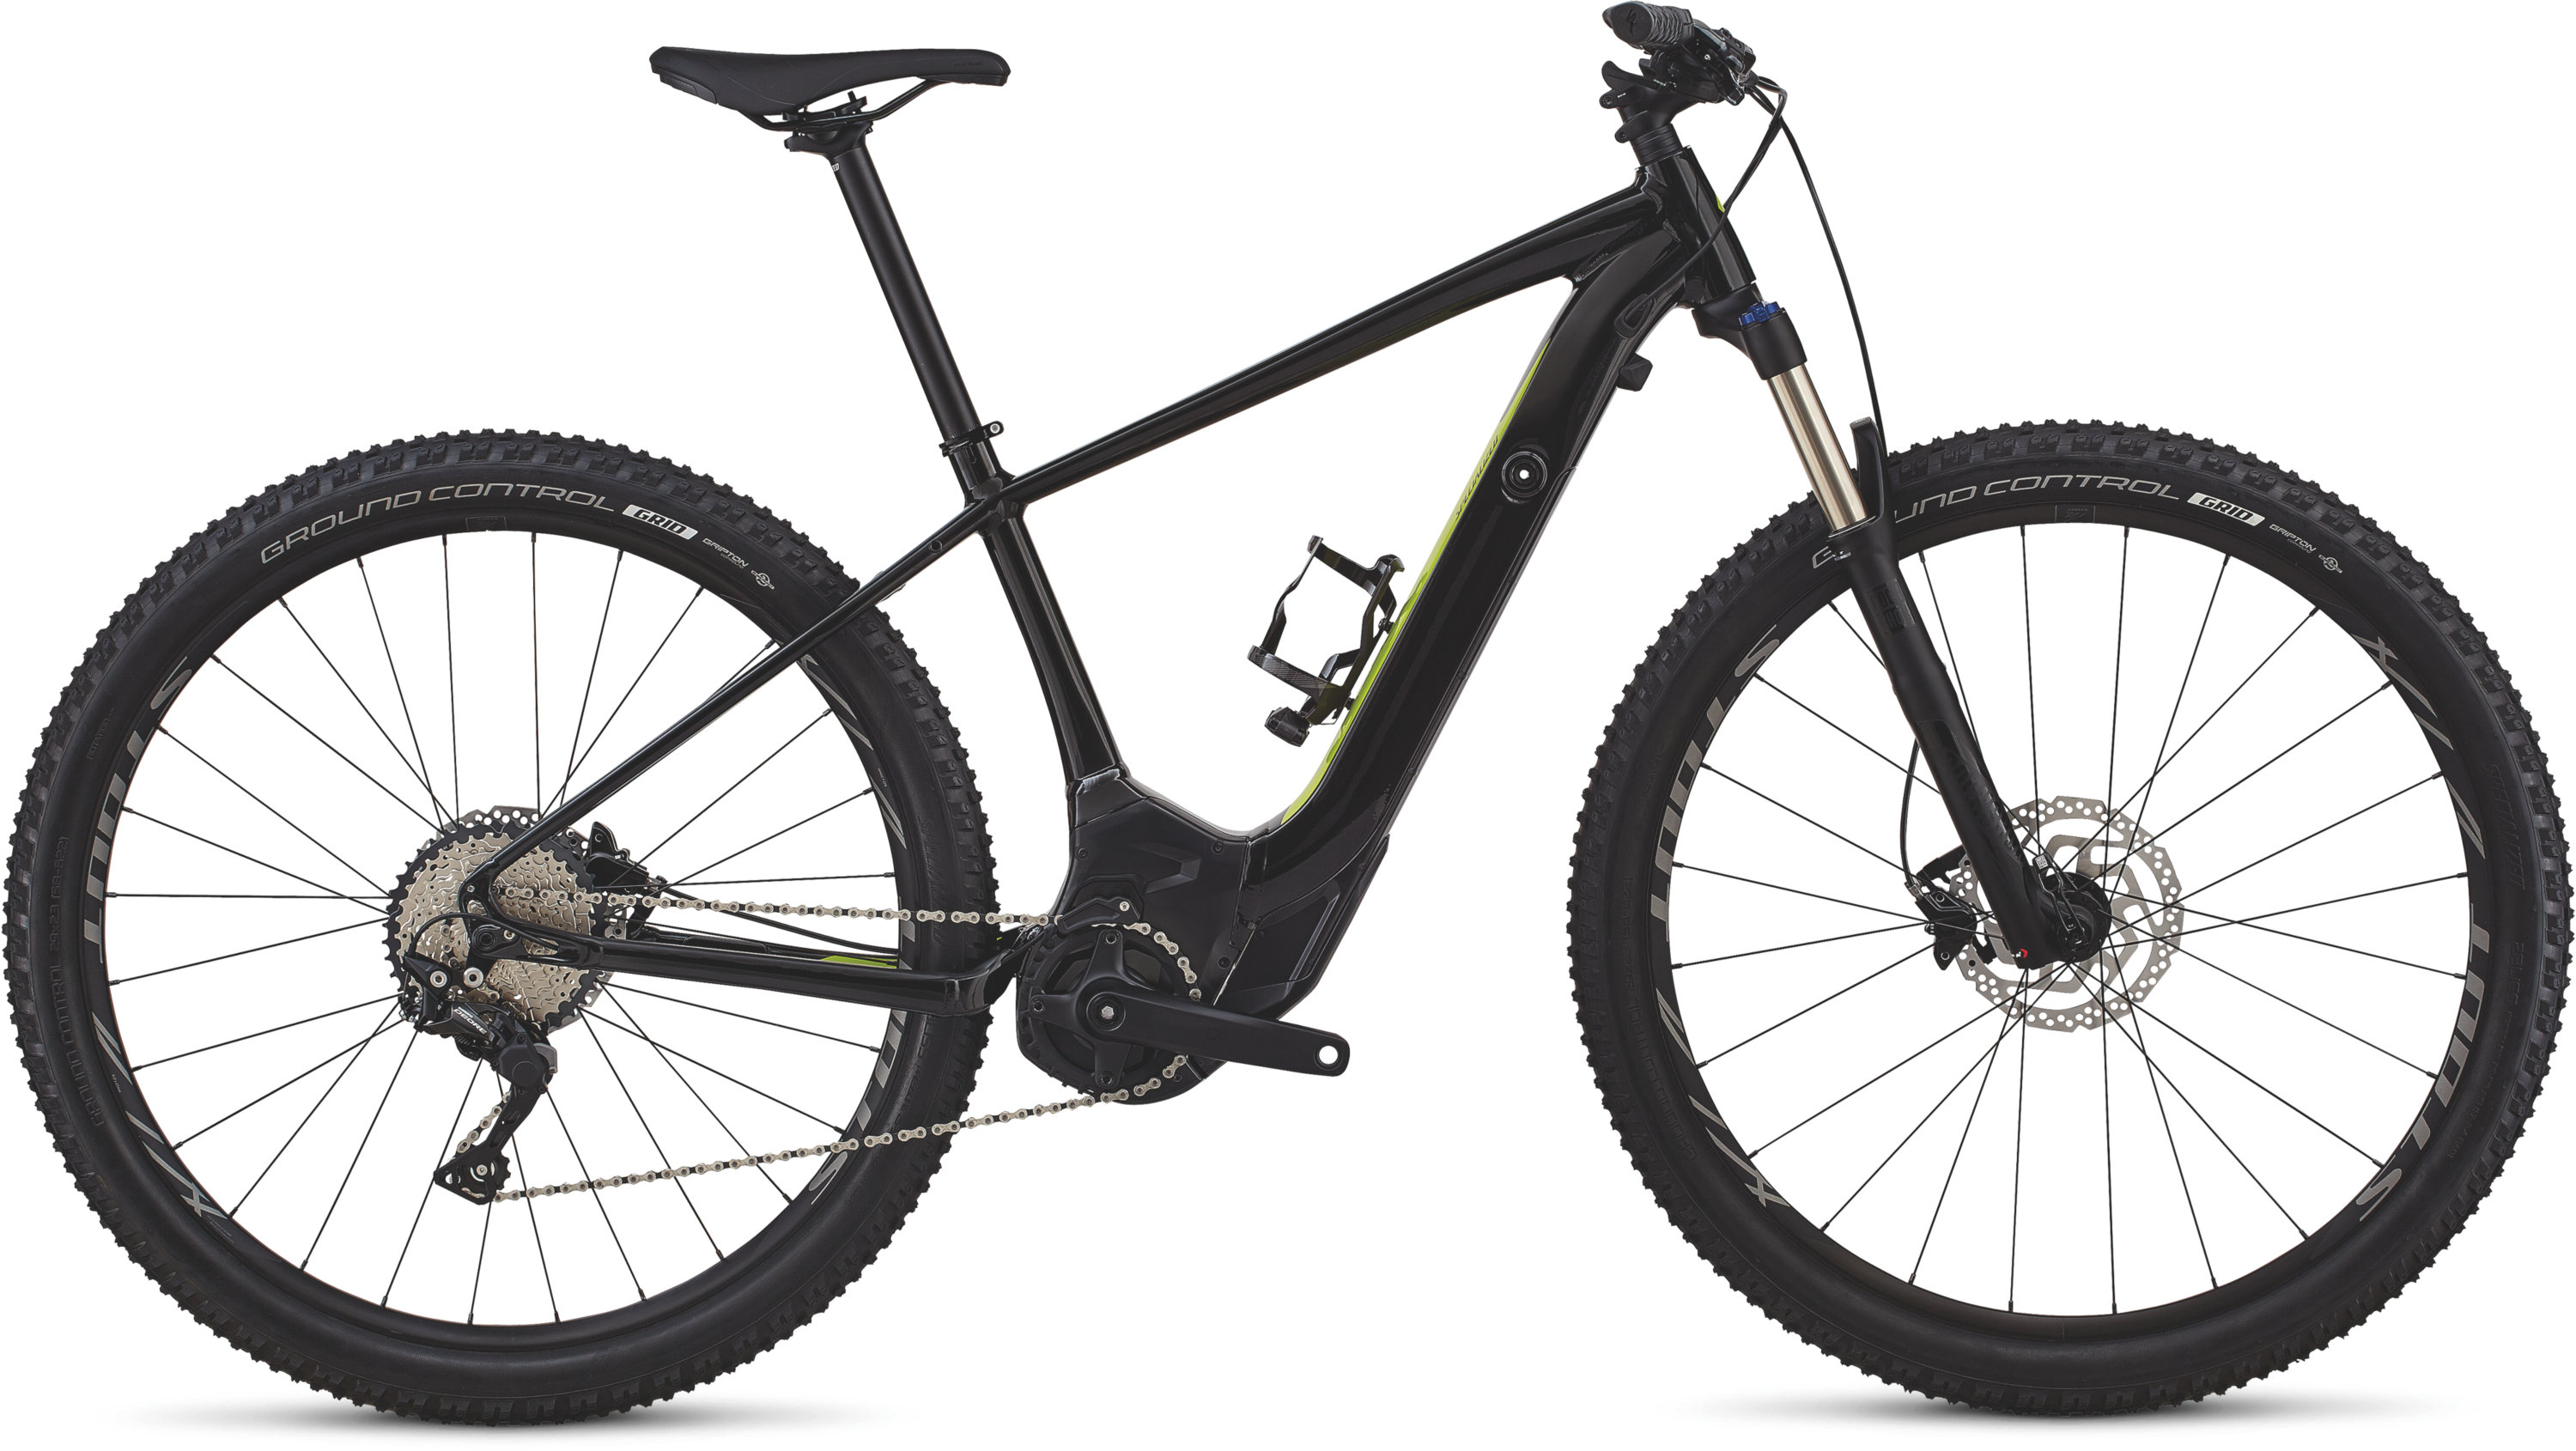 Specialized Men´s Turbo Levo Hardtail 29 Black / Hyper L - schneider-sports